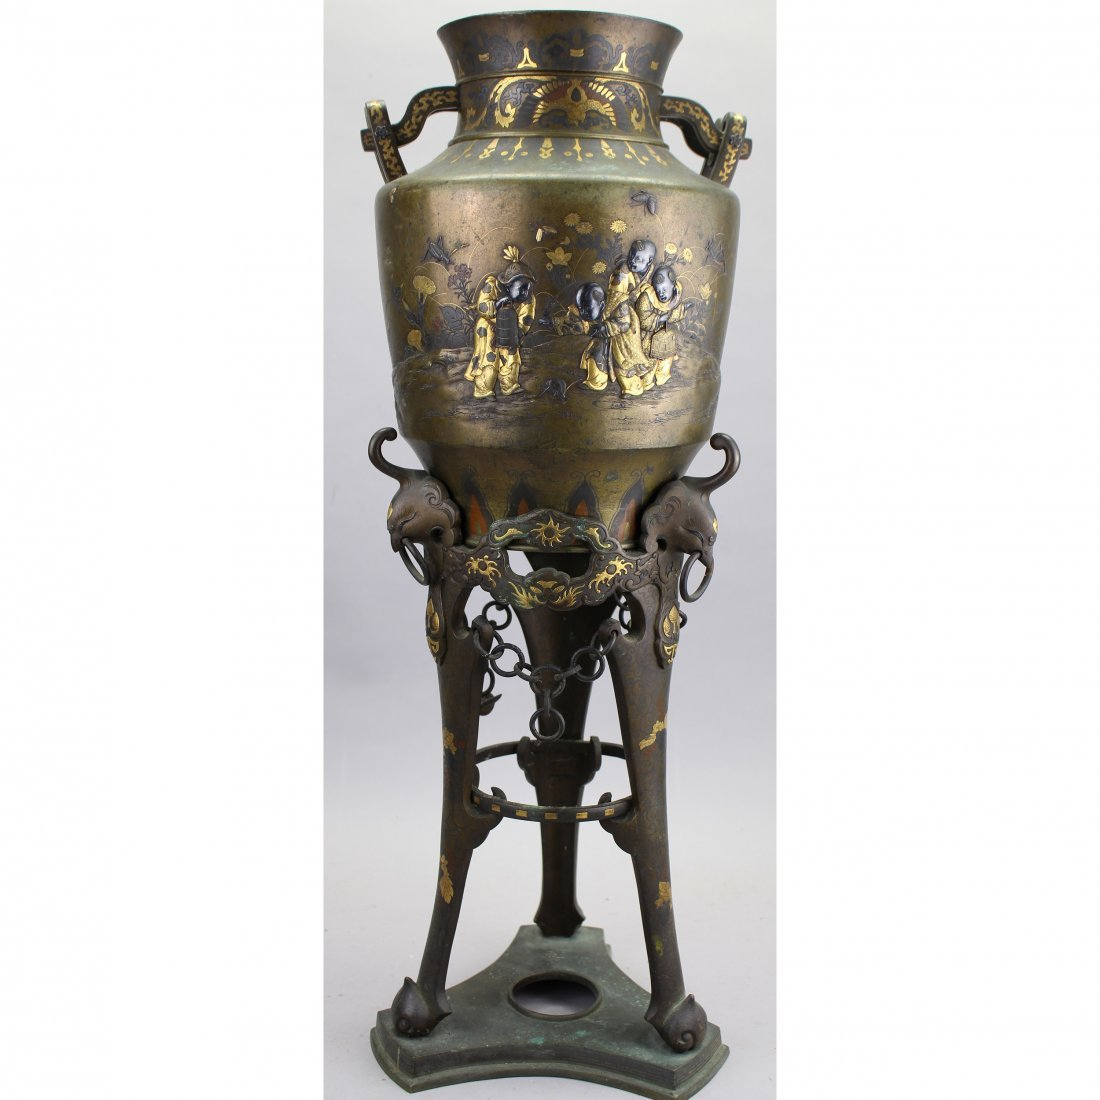 Exceptional Meiji Period Bronze/Gold Inlaid Censer